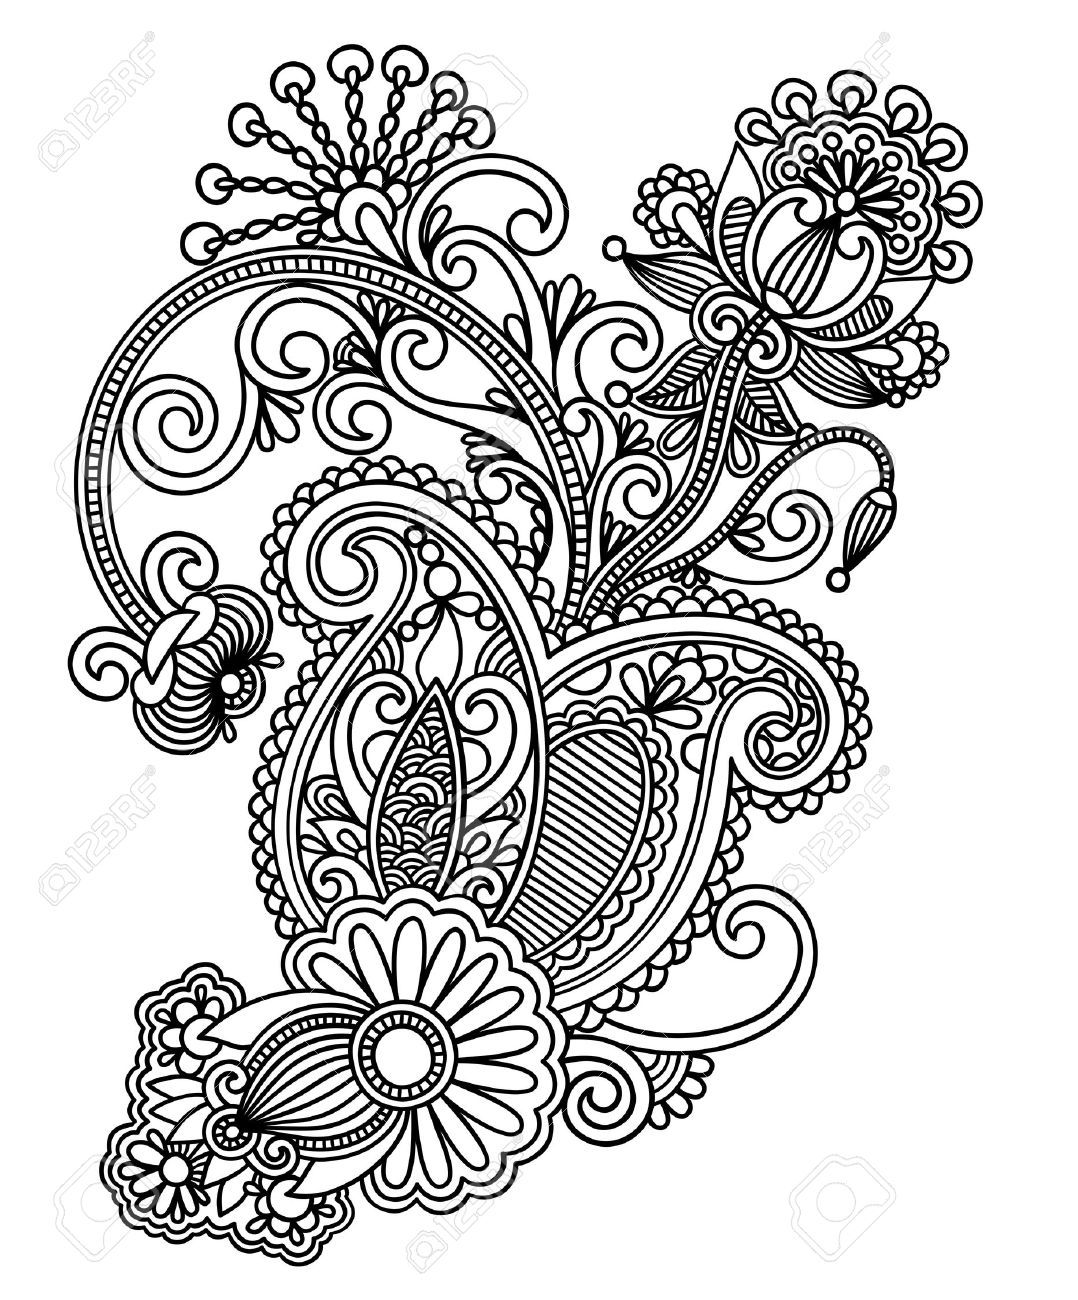 Colour Line Art Design : Aztec floral design google search tattoo ideas